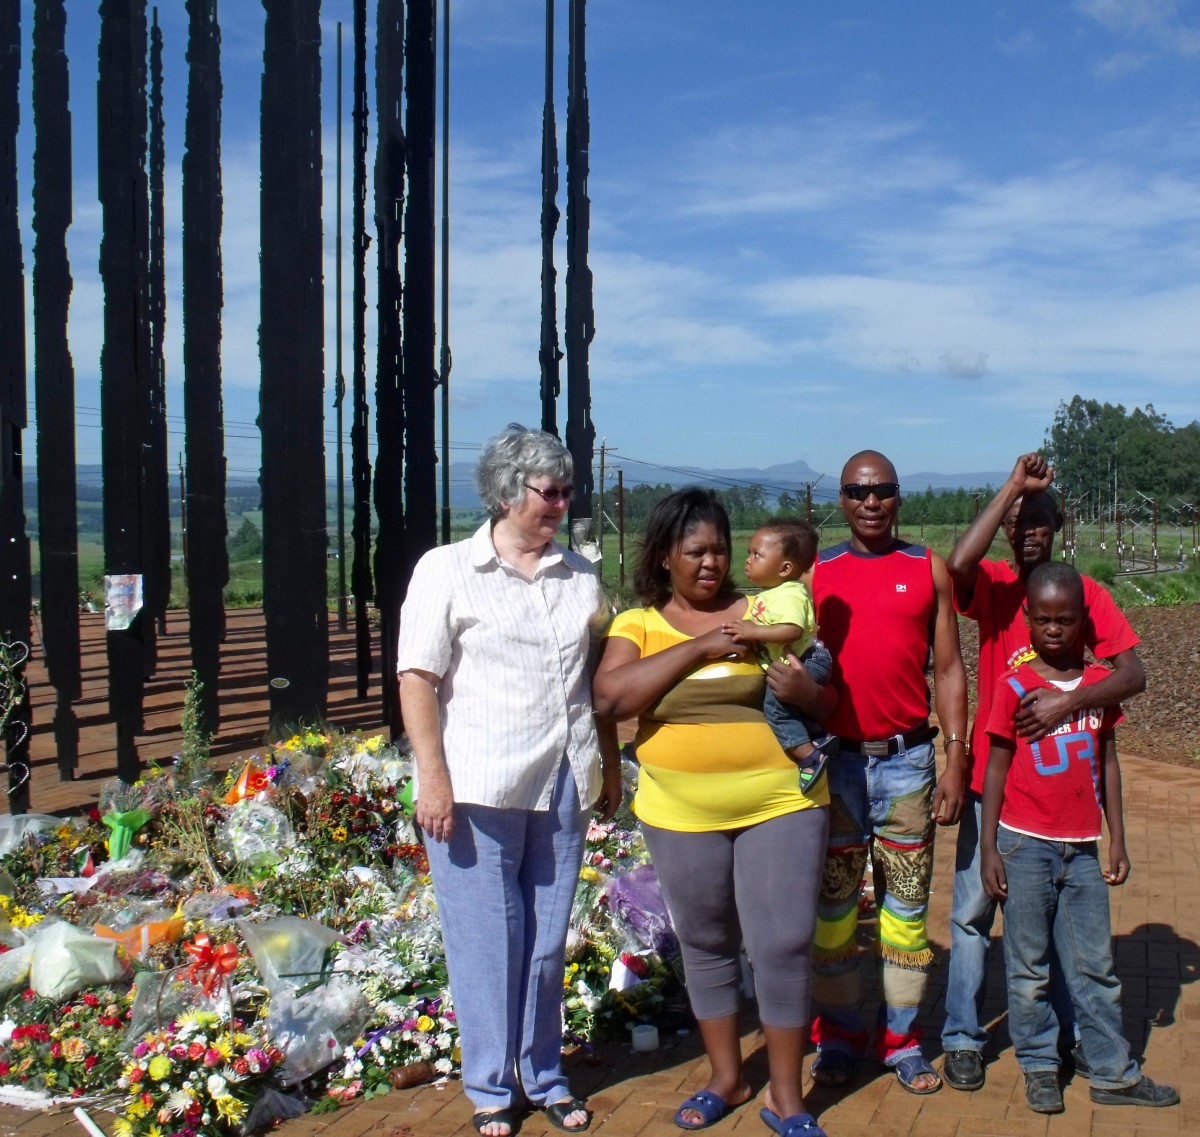 South Africans were  all coming together in their grief